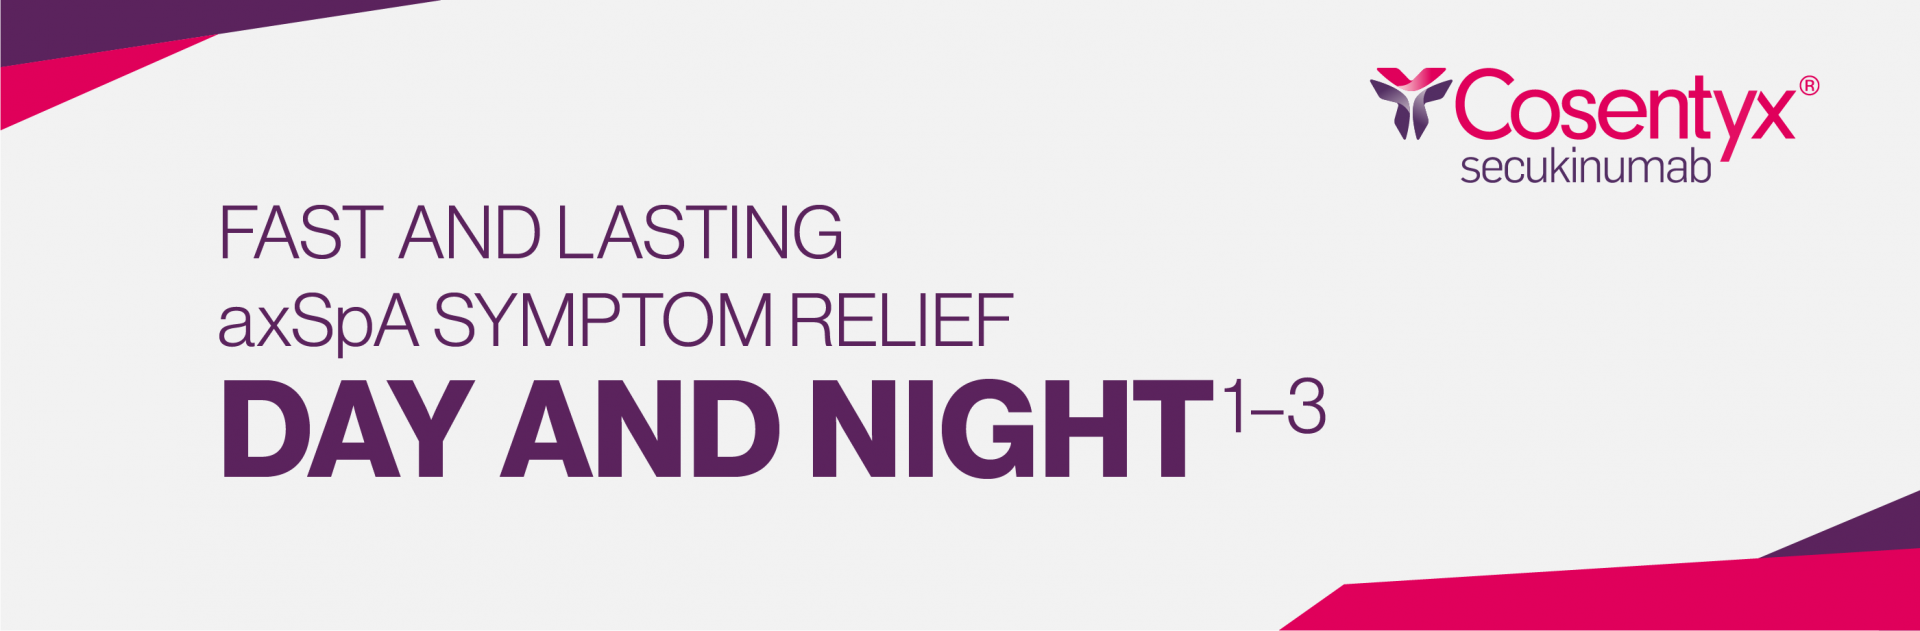 Top banner. FAST AND LASTING axSpA SYMPTOM RELIEF DAY AND NIGHT1-3